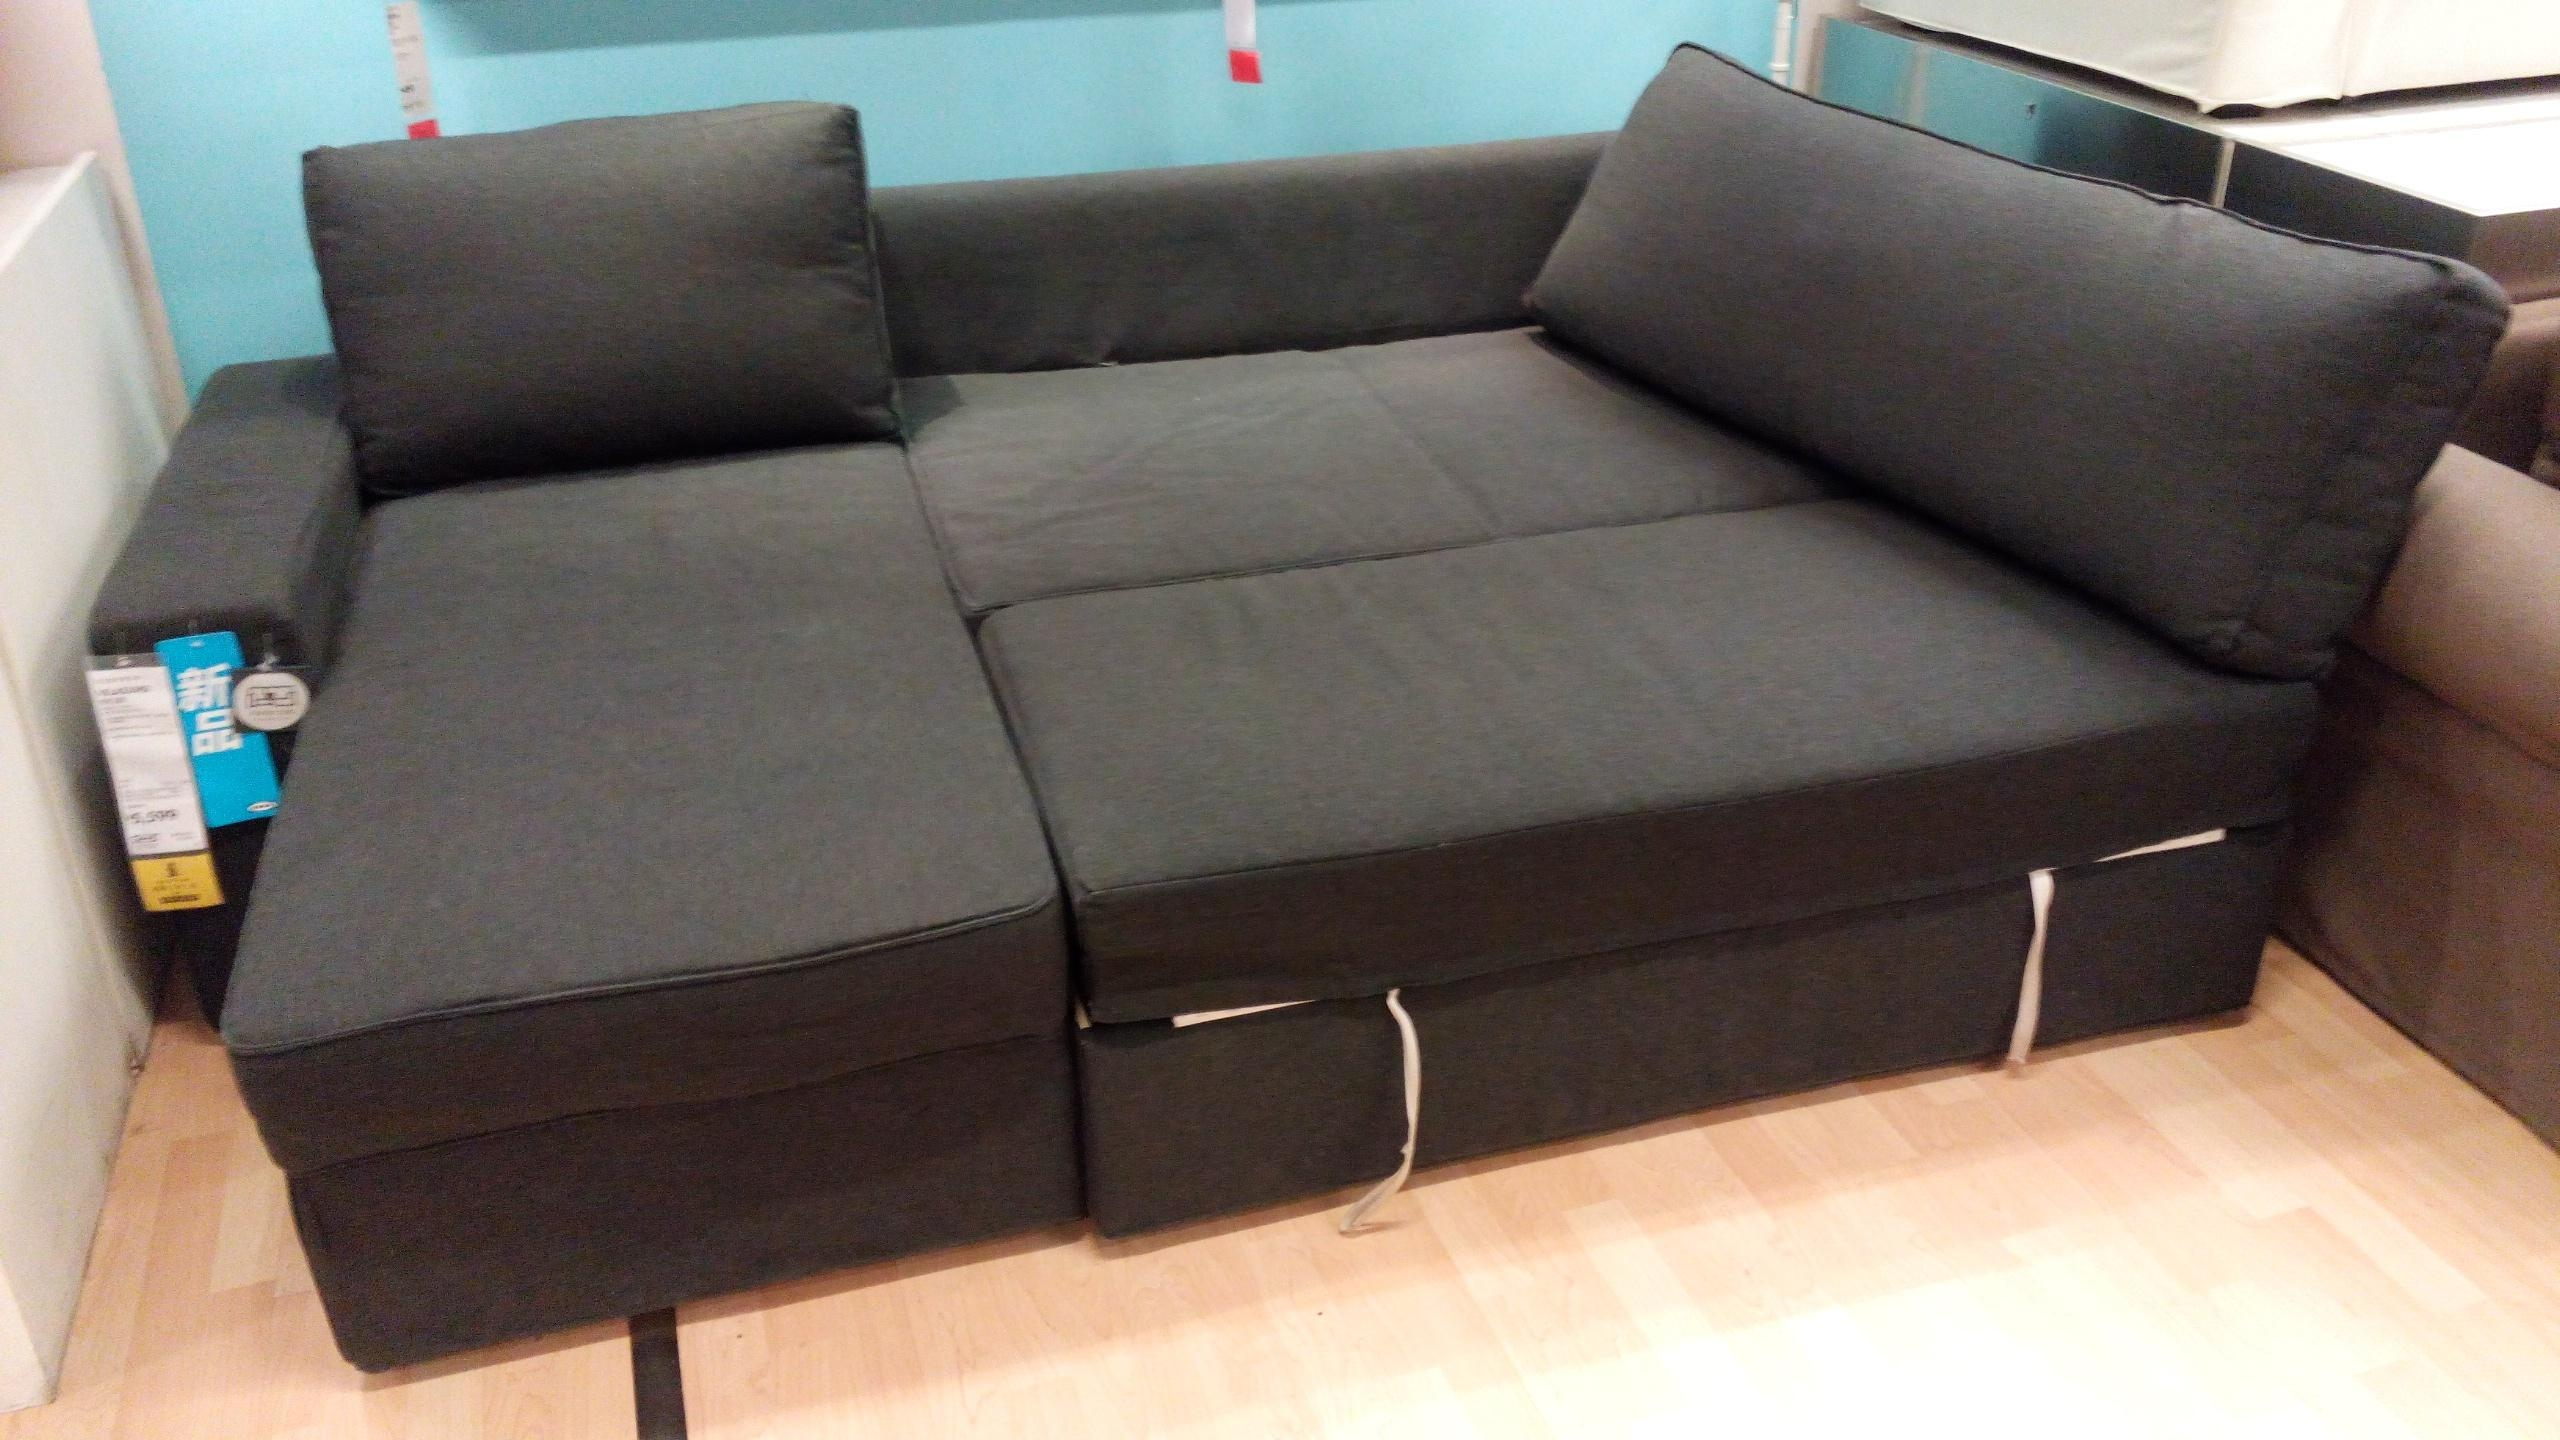 Sofas Center : Rv Sofa Mattress Pad Covers With Storage Jackknife Inside Sleeper Sofas Mattress Covers (View 20 of 20)